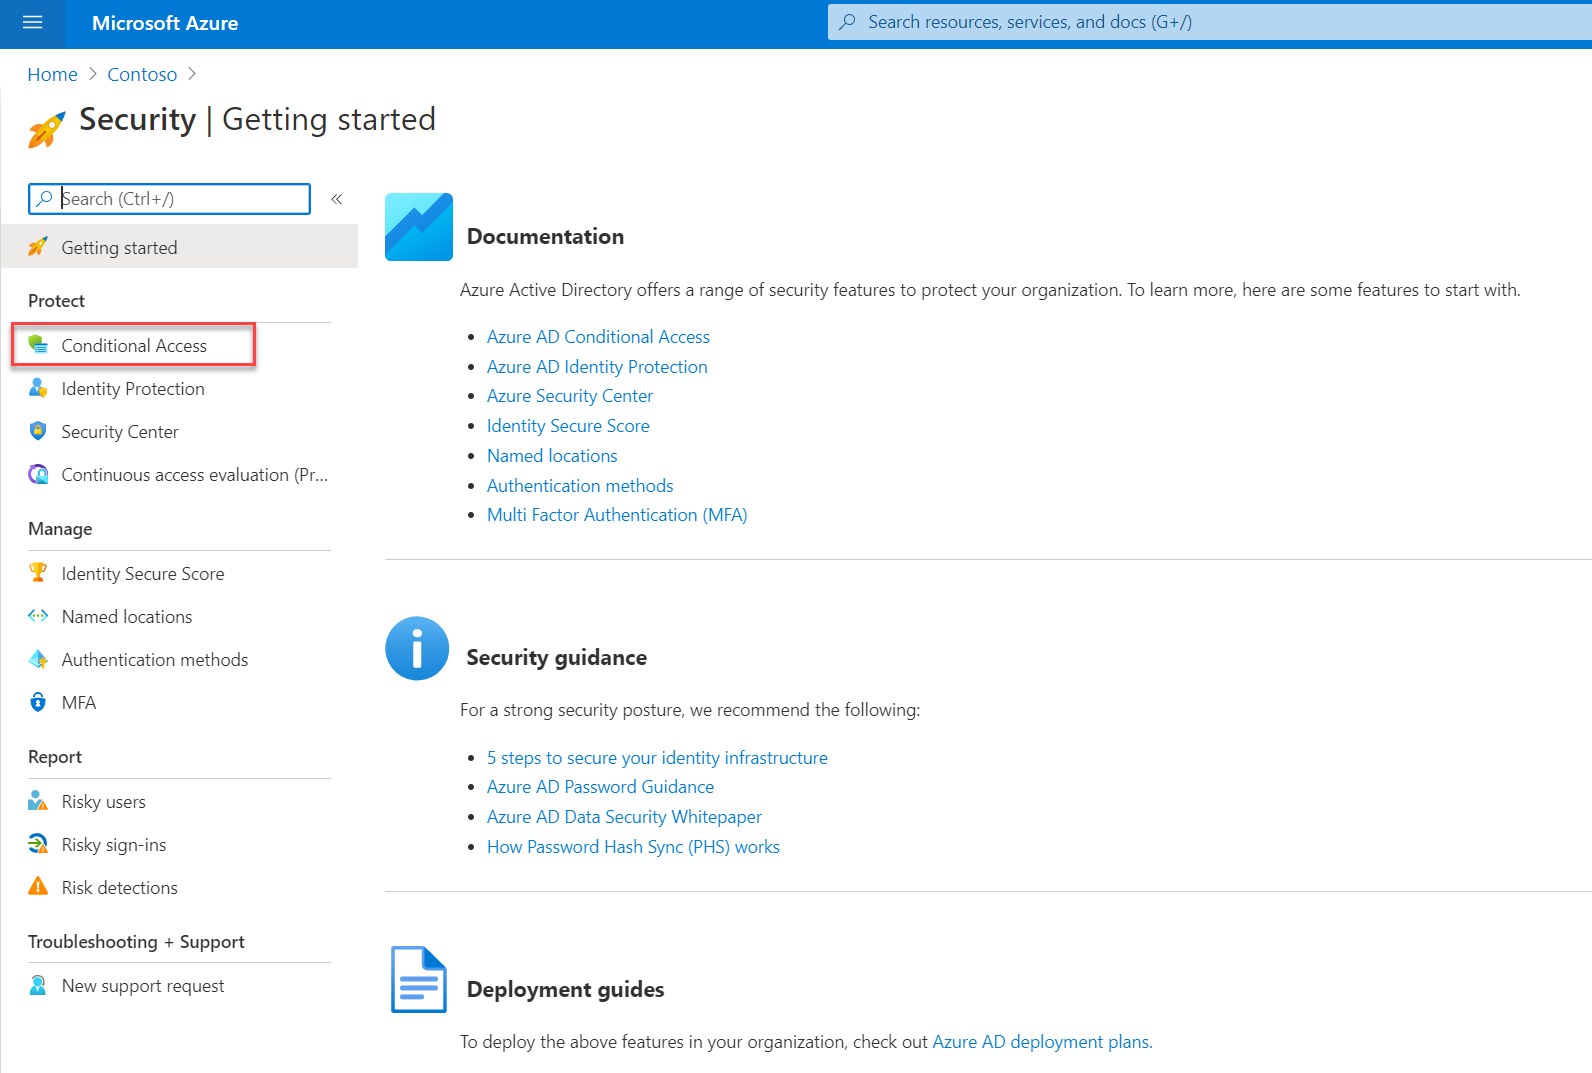 Azure Active Directory Conditional Access Policies